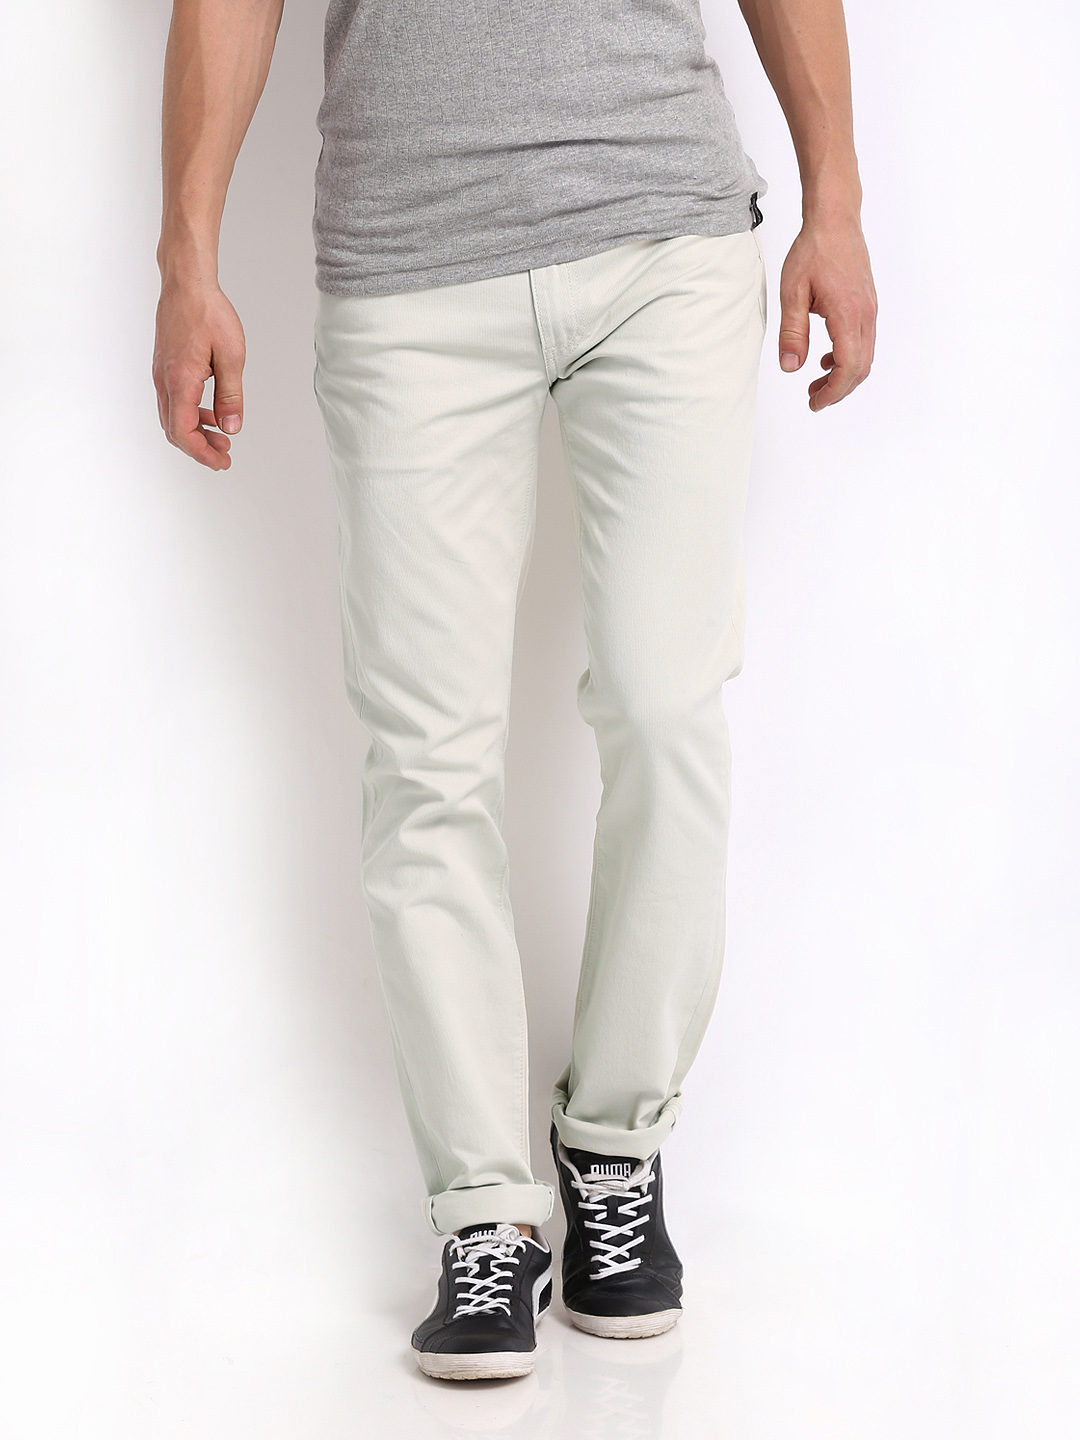 images of mens white levis jeans best fashion trends and